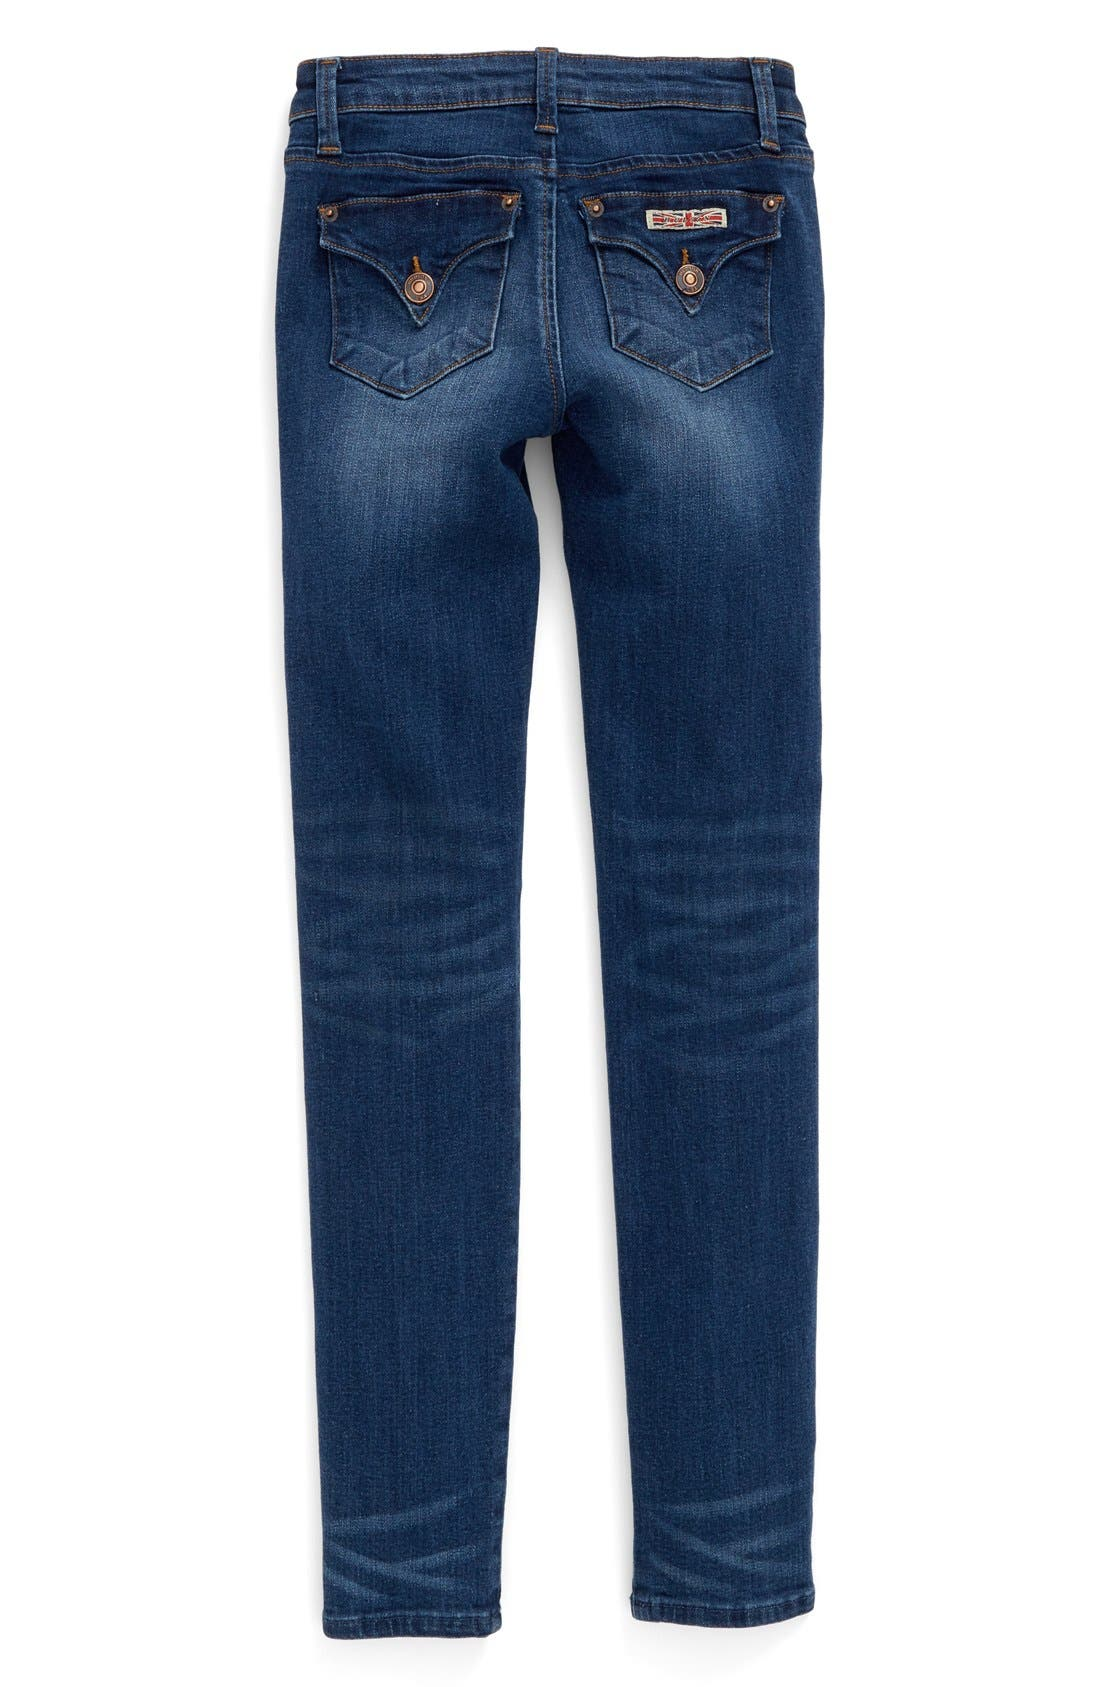 'Collin' Skinny Jeans,                             Alternate thumbnail 4, color,                             Dark Indigo Sand